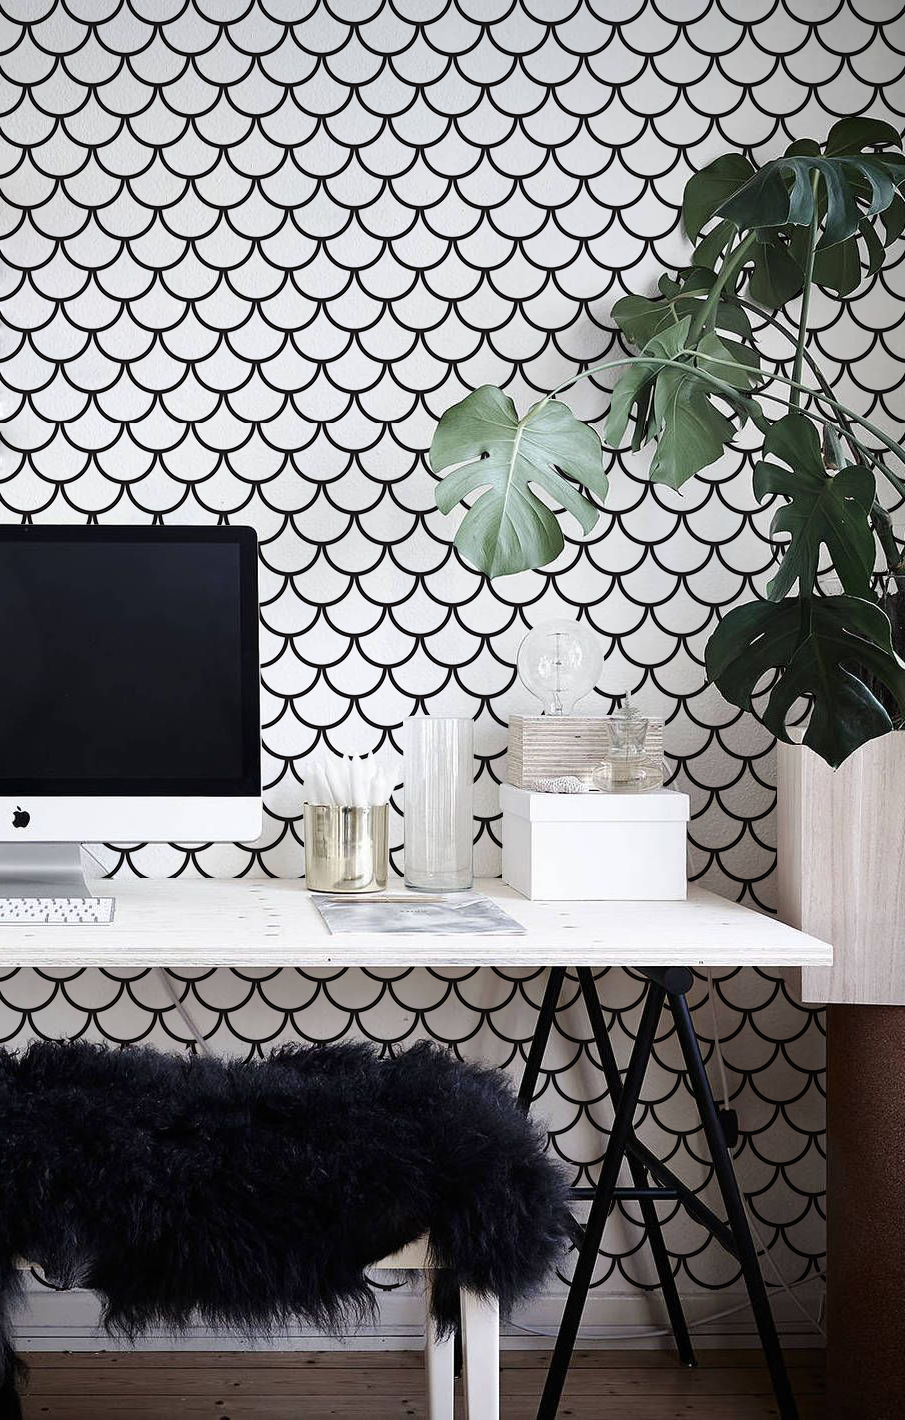 Fish scales removable wallpaper in apartment decor